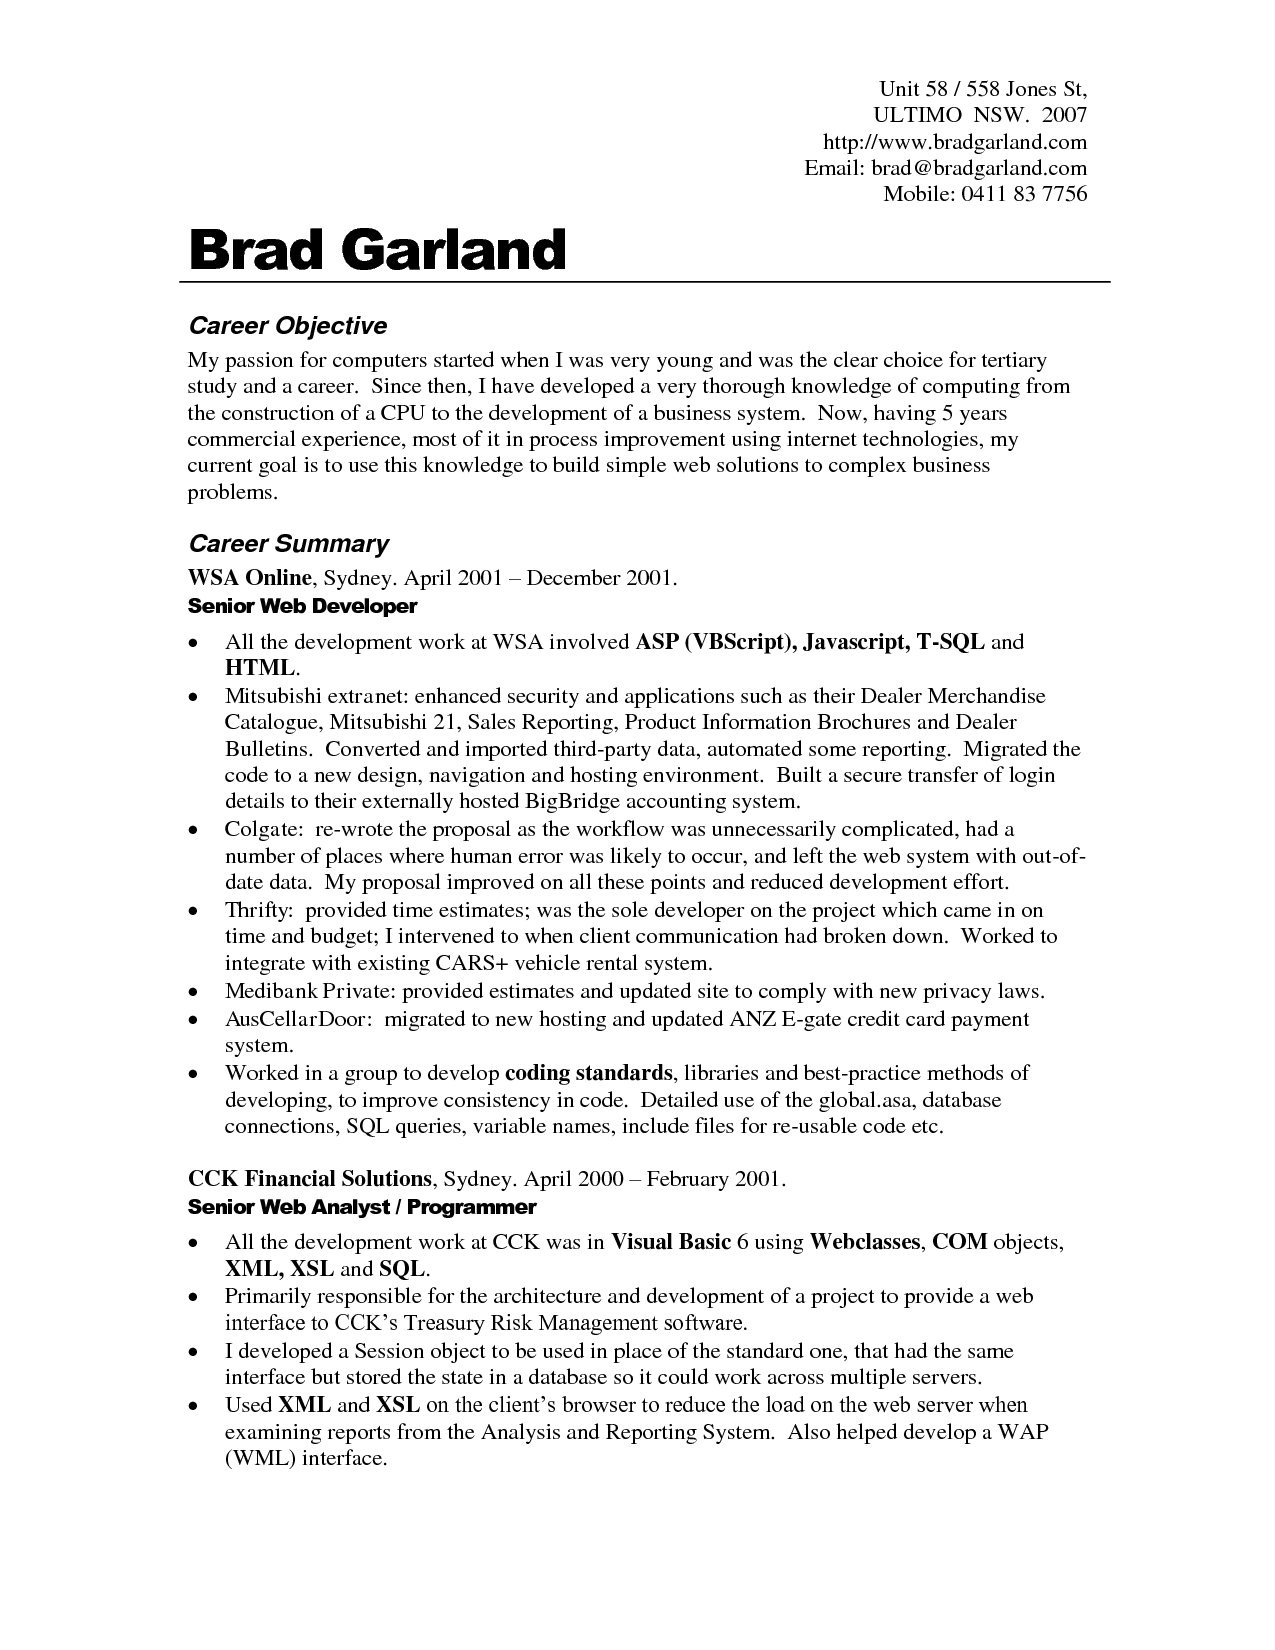 Career Objective For Resume Resume Objectives Examples Best Templateresume Objective Examples